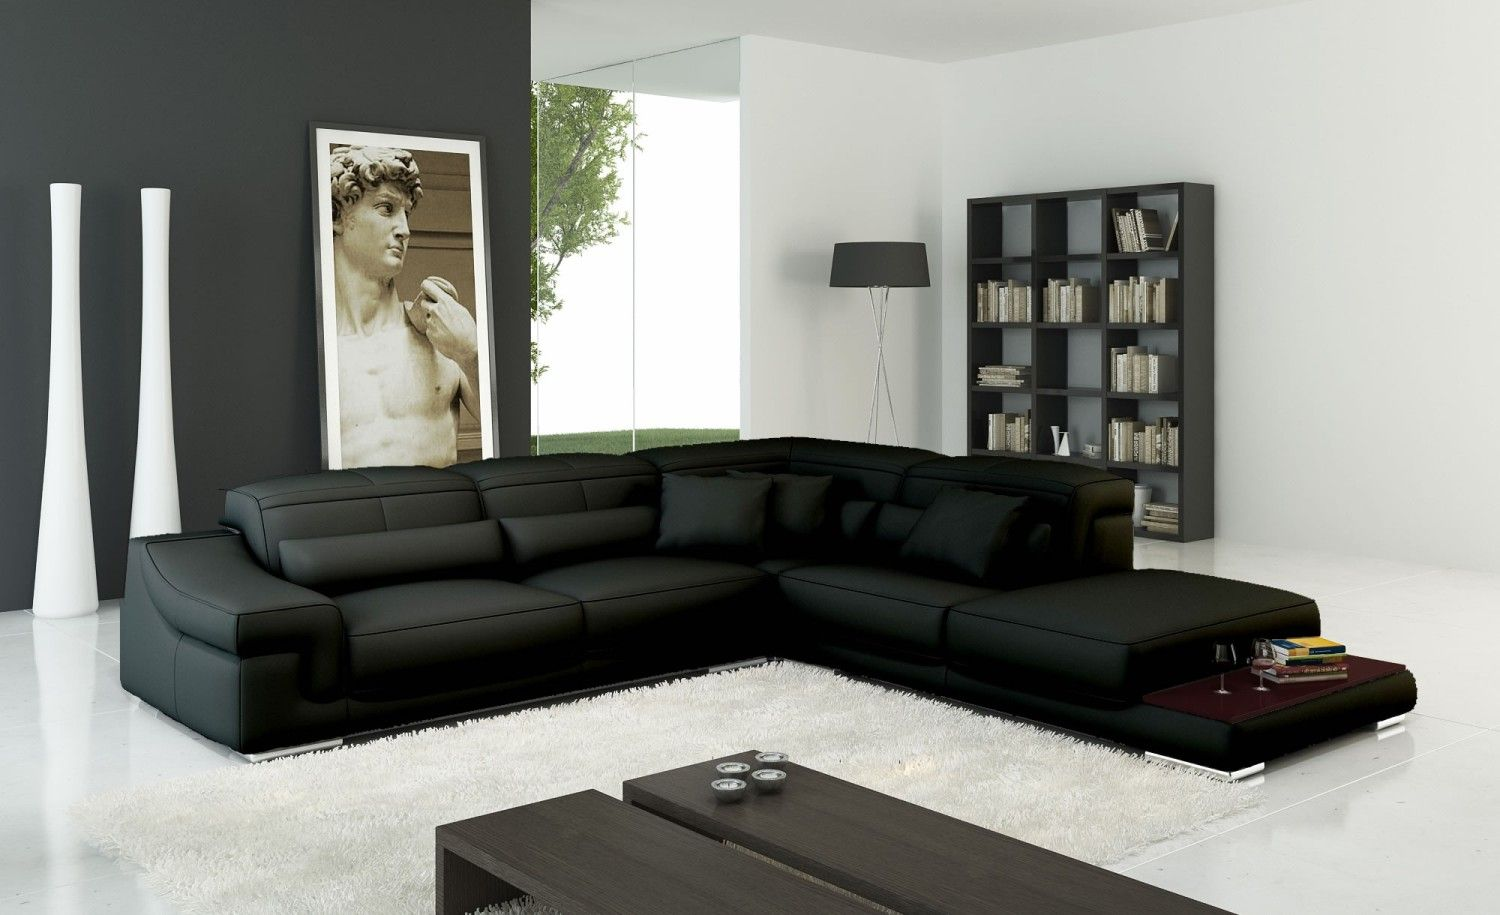 Grey Leather Corner Sofa Uk Steel Set Designs With Price In Chennai How To Clean Your Black 2018 Pinterest